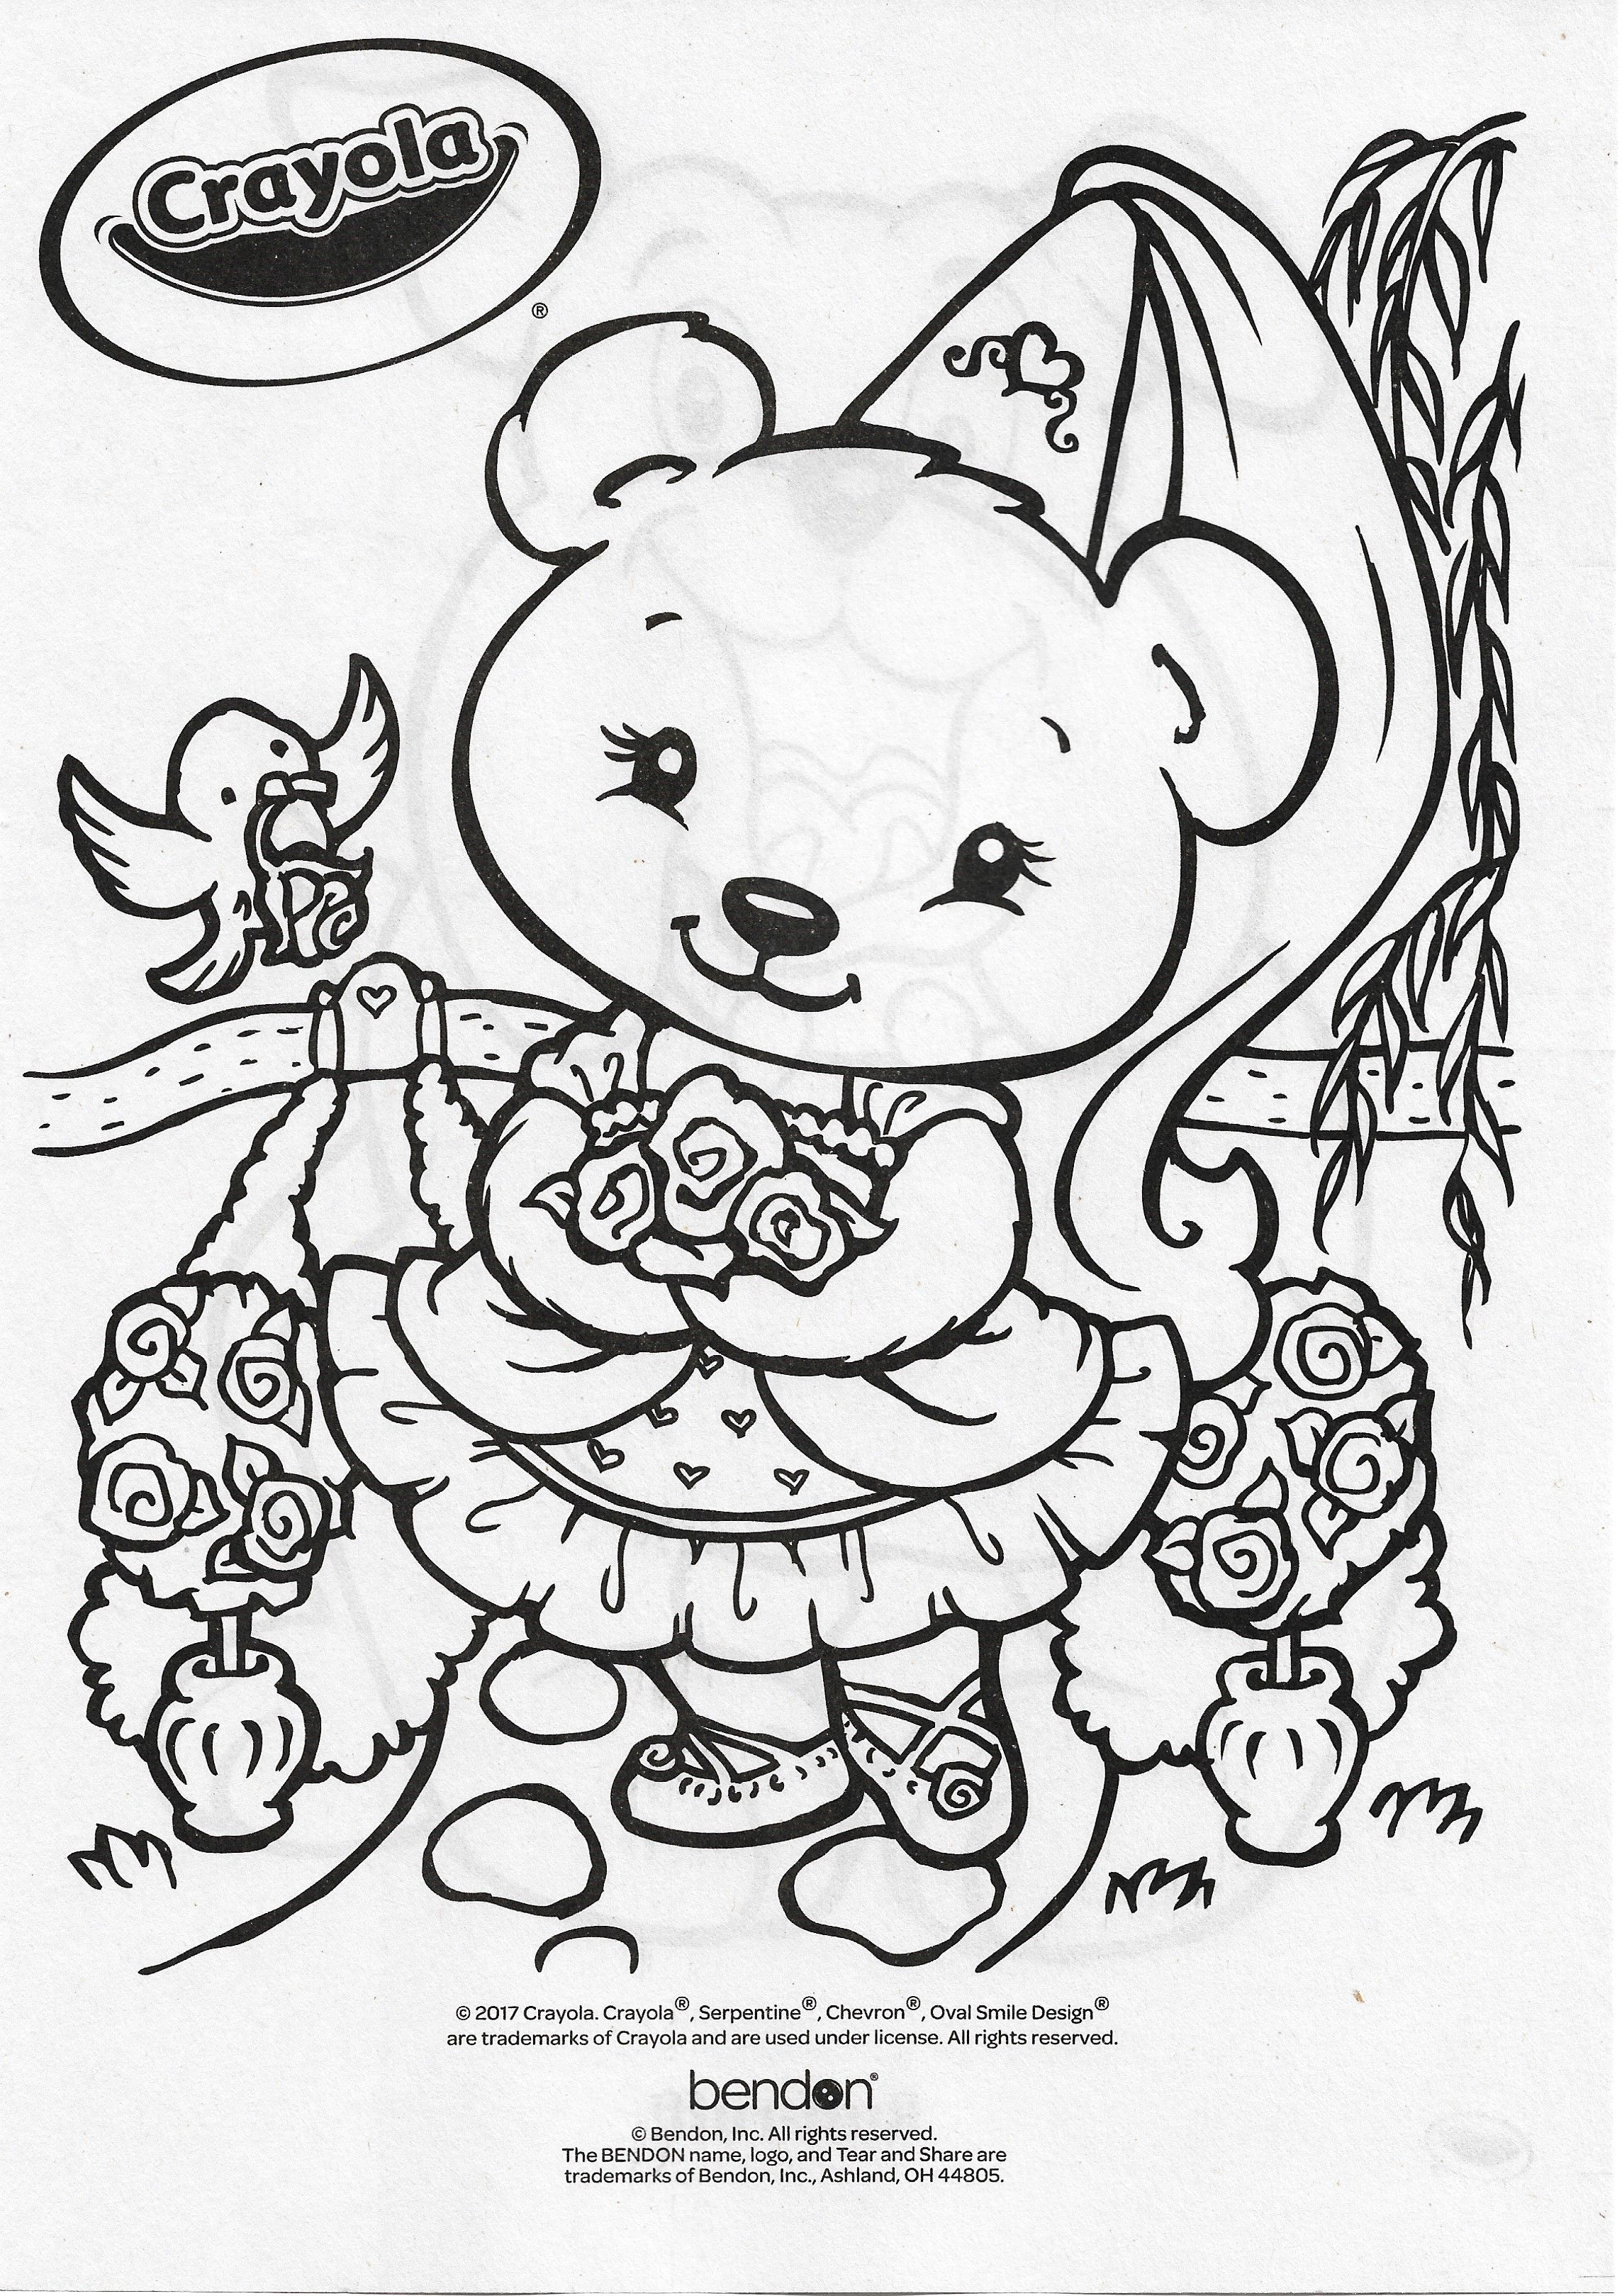 Crayola Coloring Pages Bear Coloring Pages Coloring Pages Crayola Coloring Pages [ 3238 x 2288 Pixel ]